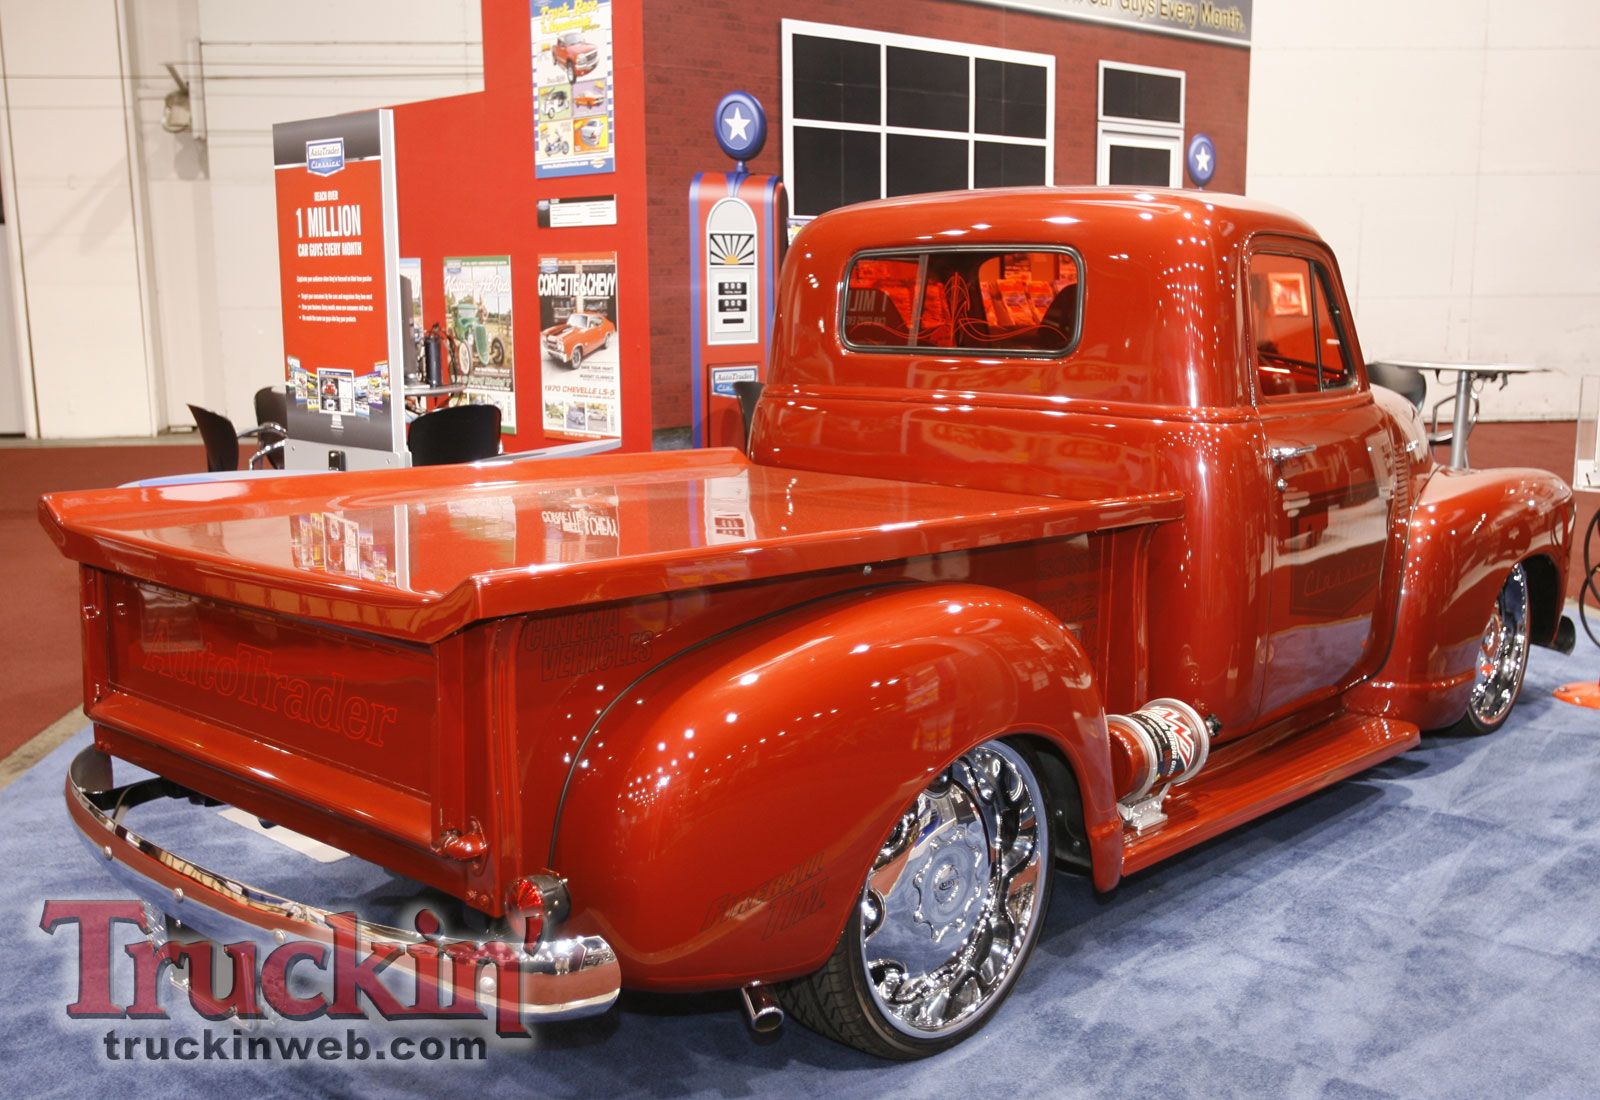 Angus\'s blog: Images Trucks-classic-car-for-sale-F. Powered by ...